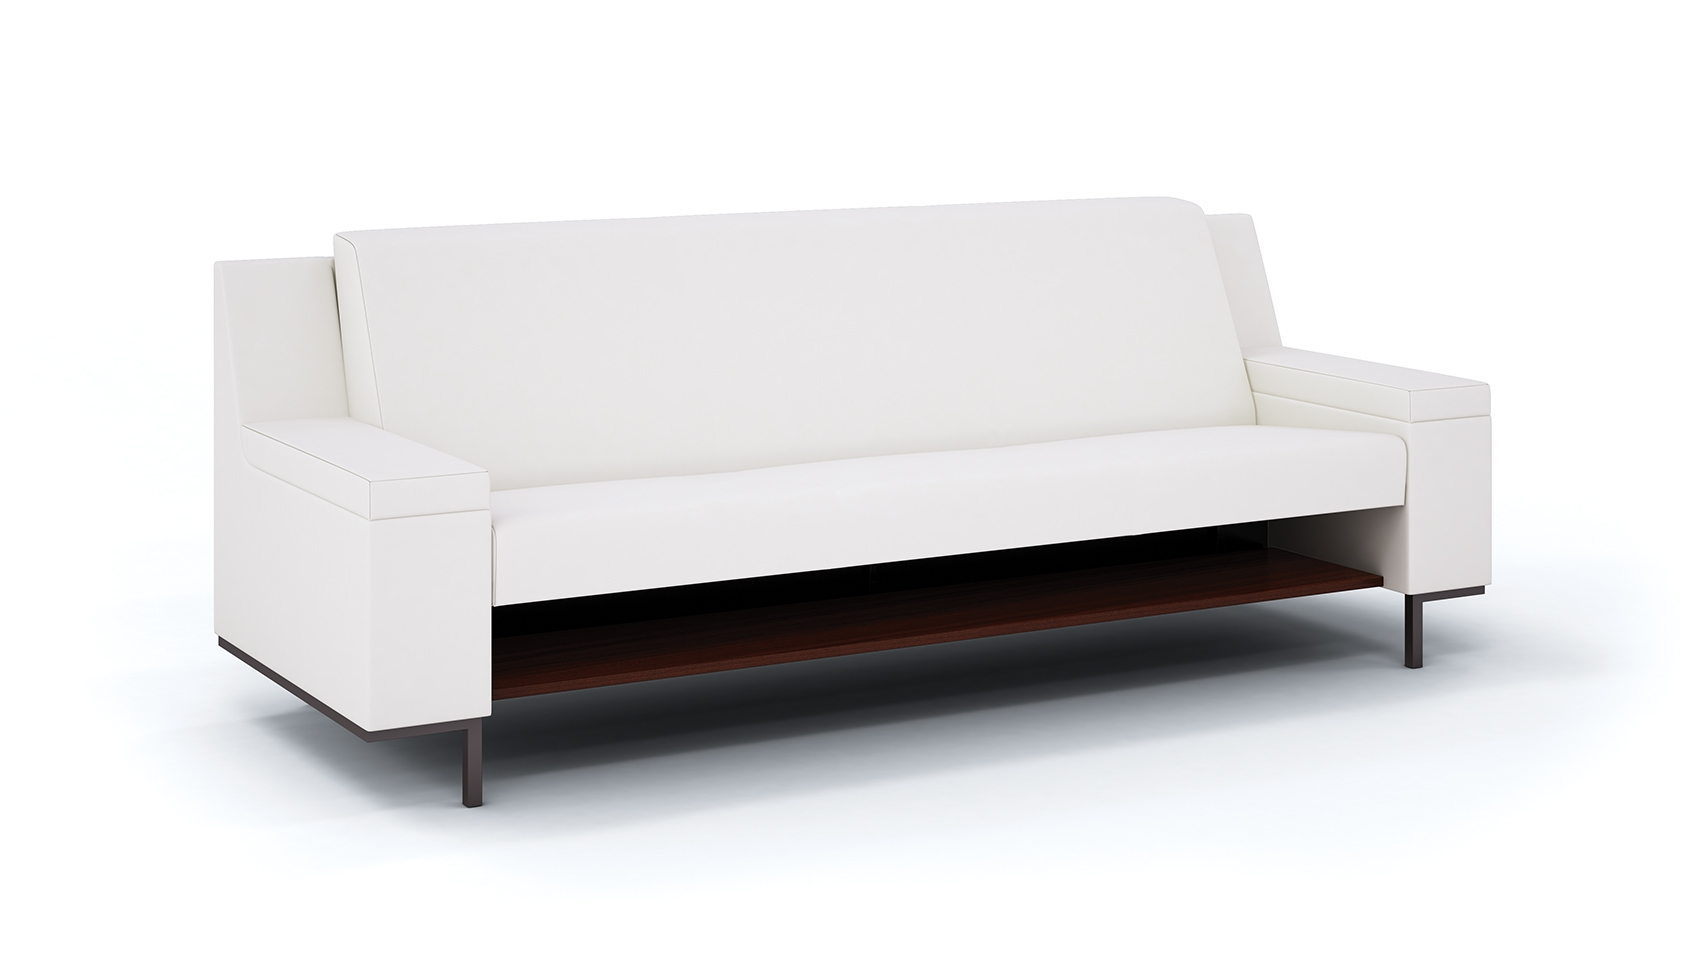 Reverie Is A Sleepover Sofa For Healthcare Spaces That Offers Supreme Form  And Function. Thoughtfully Designed With Multiple Arm Styles, ... Design